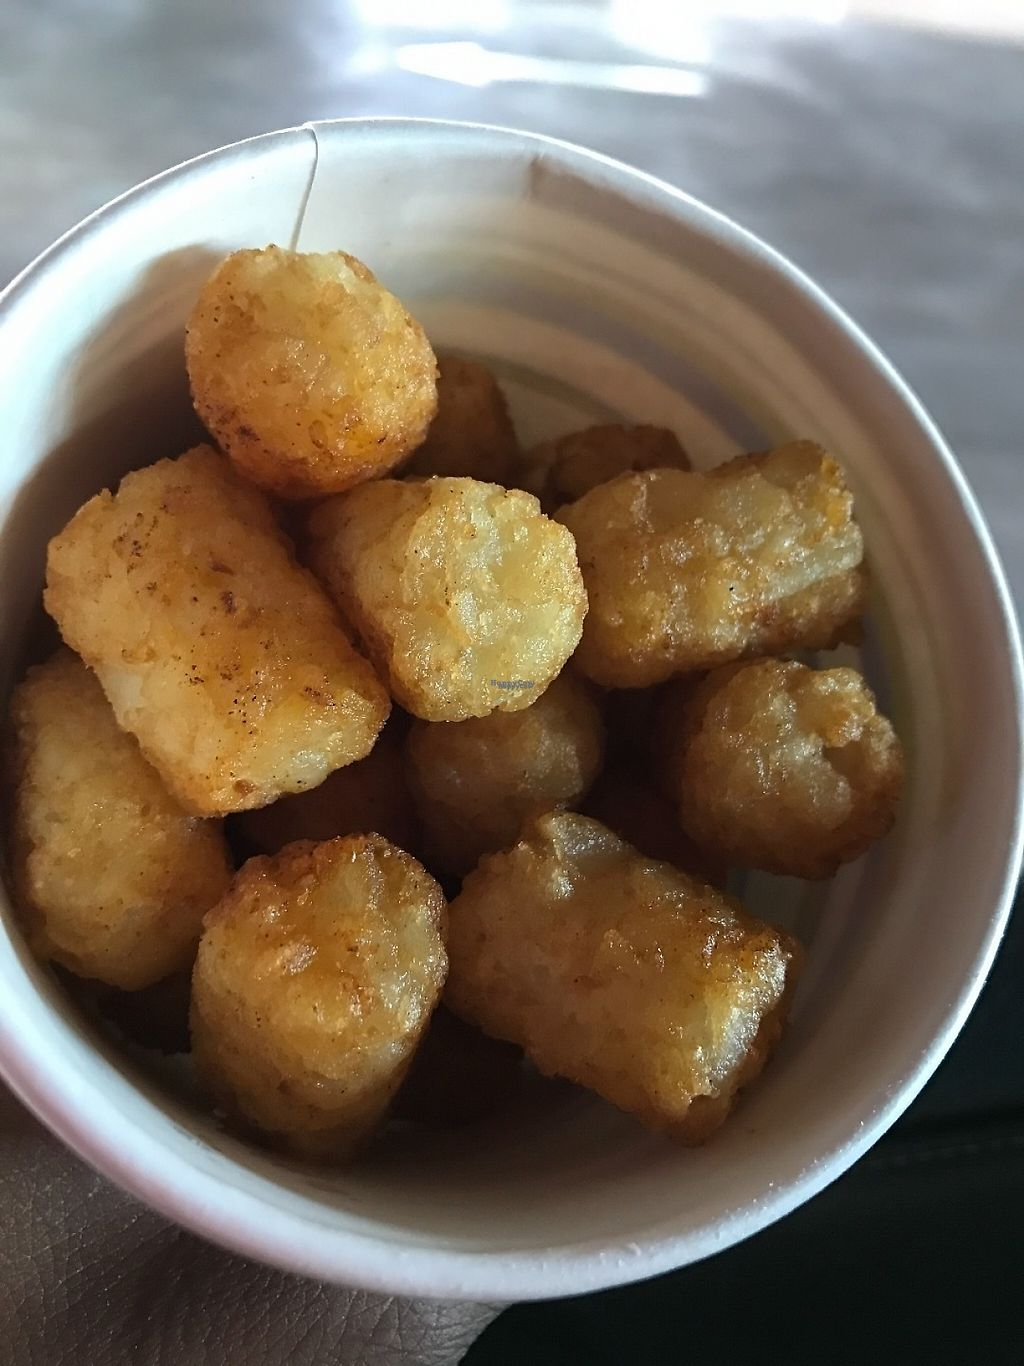 "Photo of Even Stevens Sandwiches  by <a href=""/members/profile/Tigra220"">Tigra220</a> <br/>plain Tater Tots <br/> December 28, 2016  - <a href='/contact/abuse/image/81029/205616'>Report</a>"